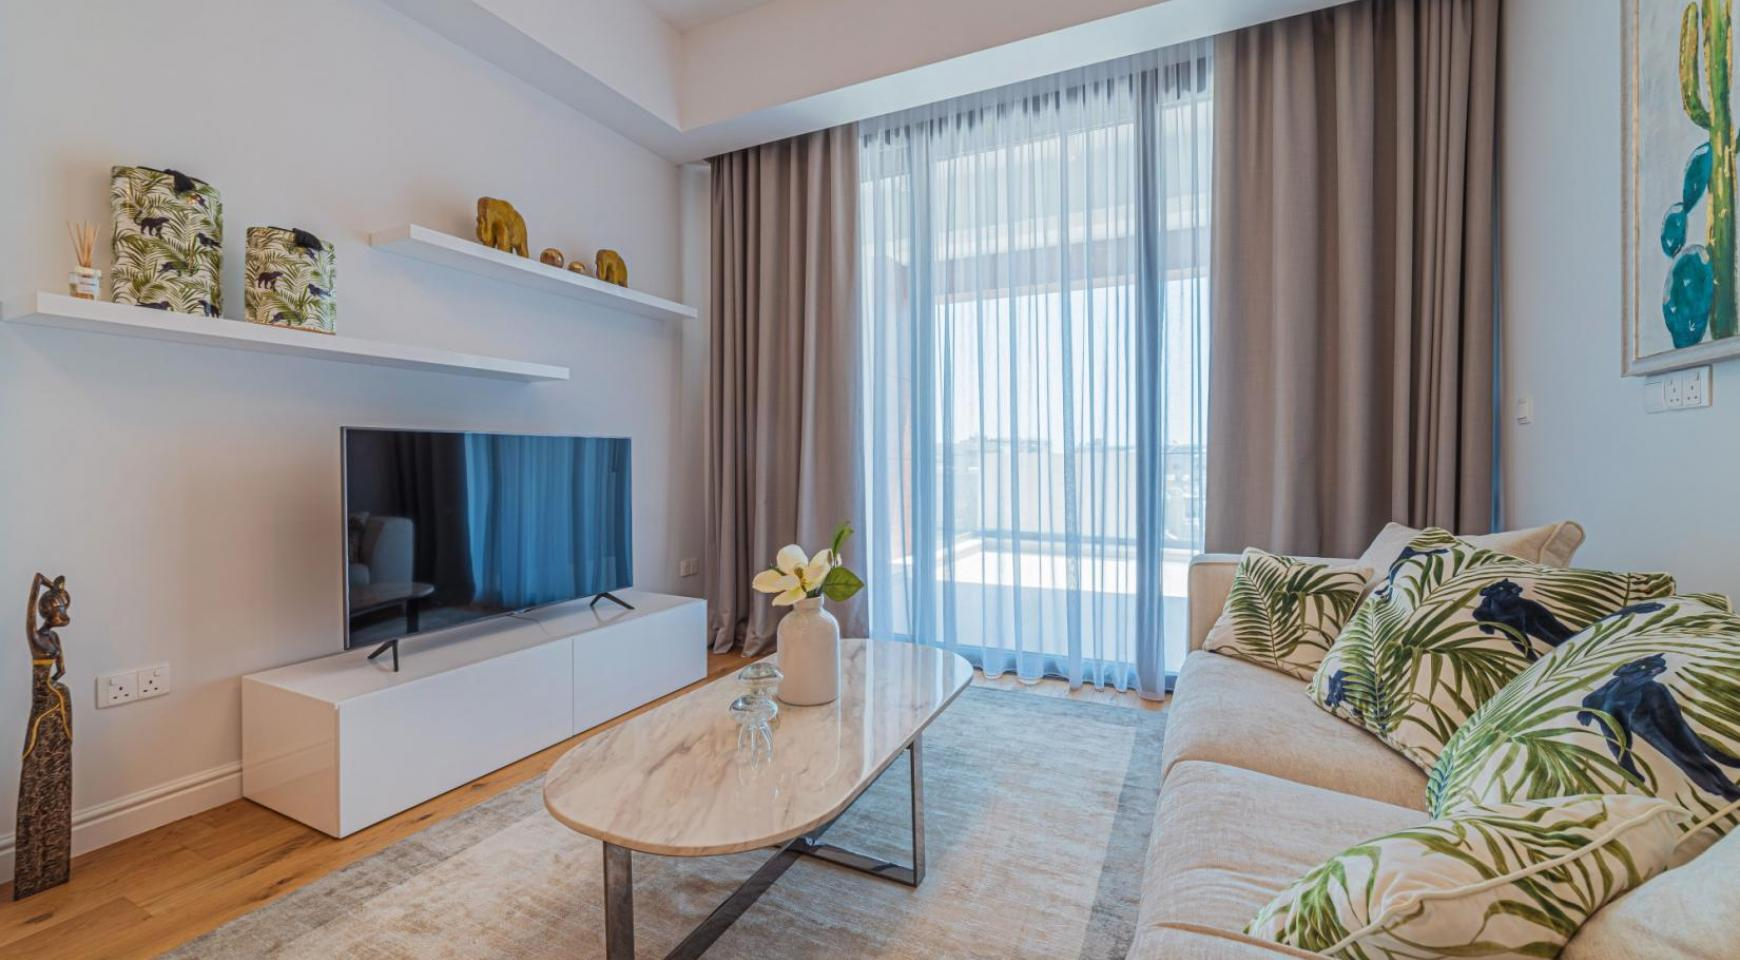 Hortensia Residence, Apt. 102. 2 Bedroom Apartment within a New Complex near the Sea  - 49